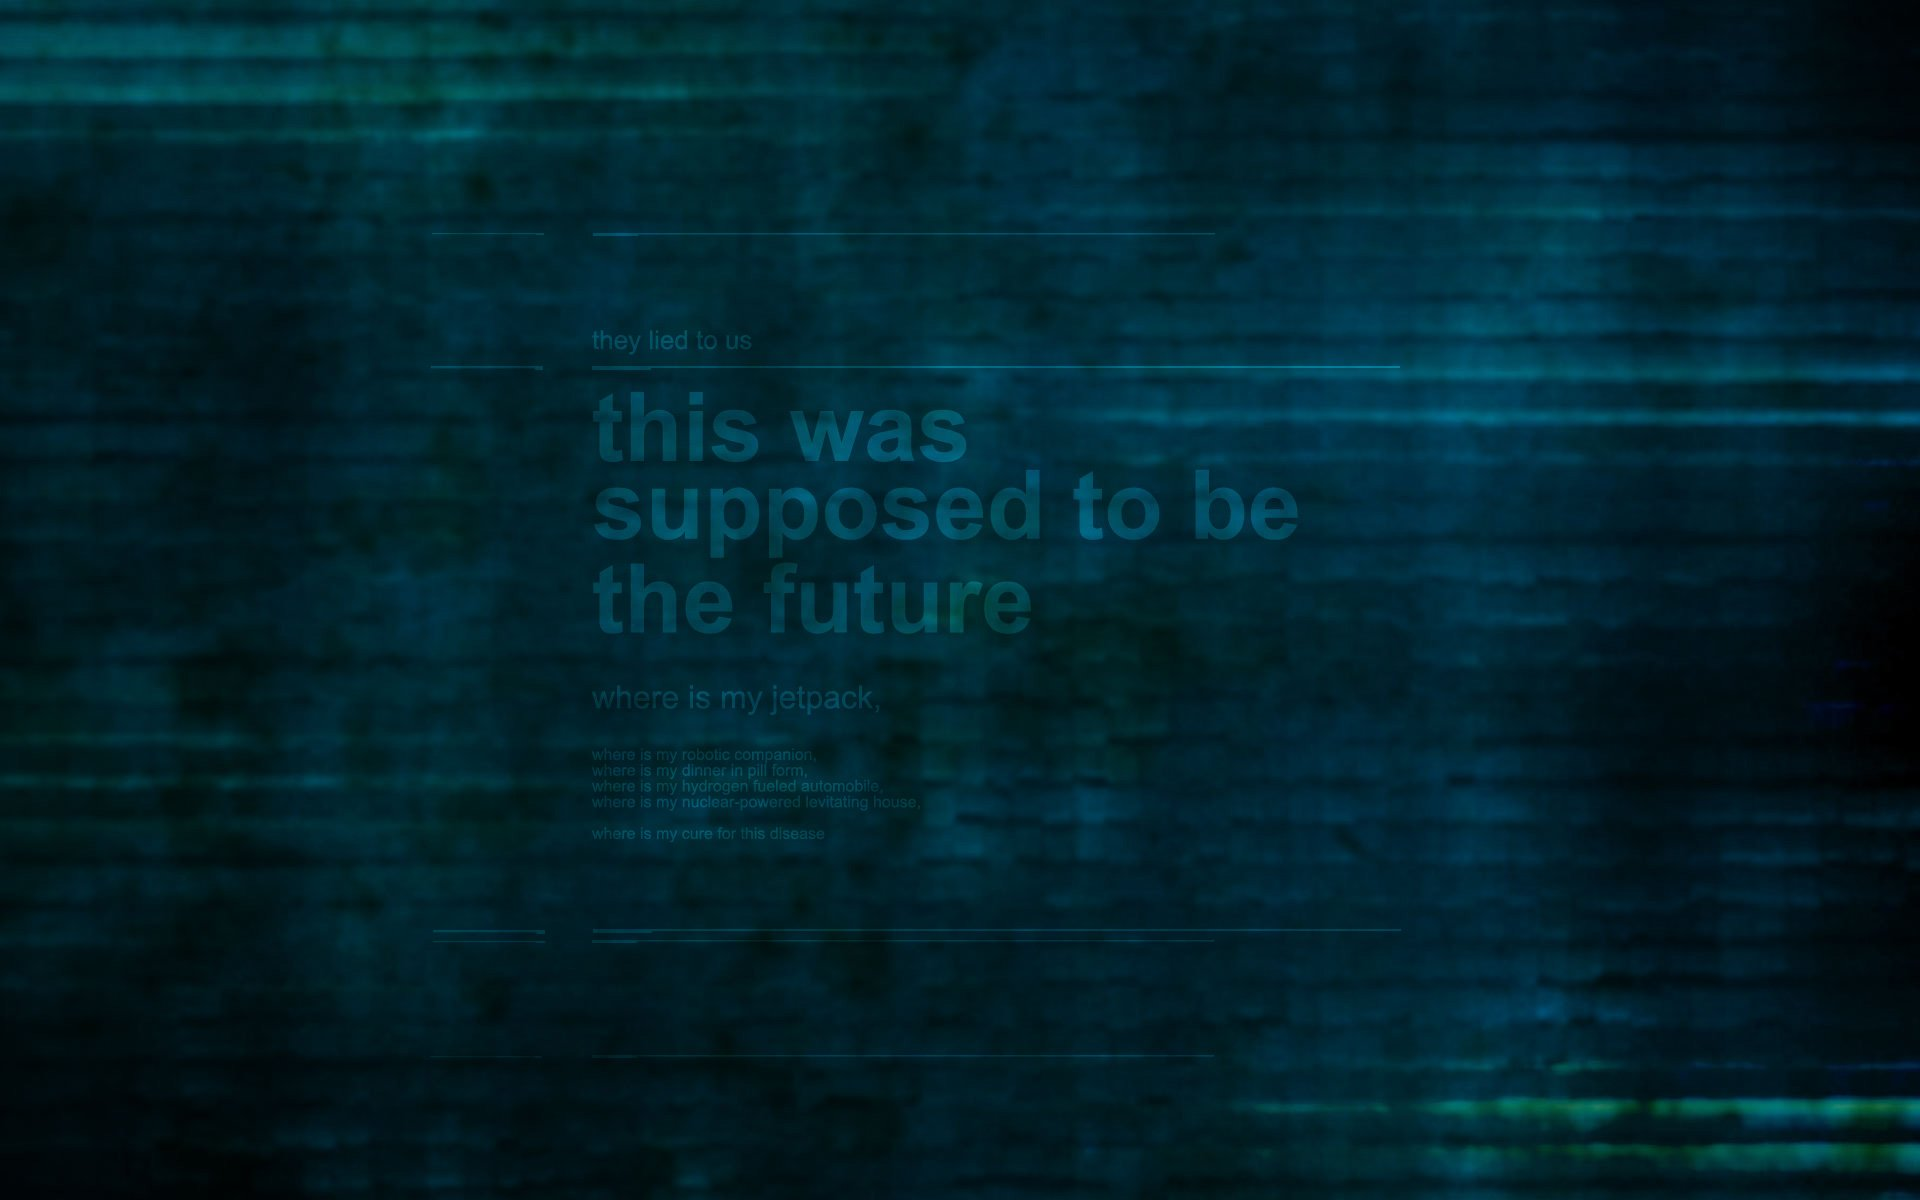 Windows 7 Original Wallpaper Hd Futuristic Text Technology Green Background Inventions